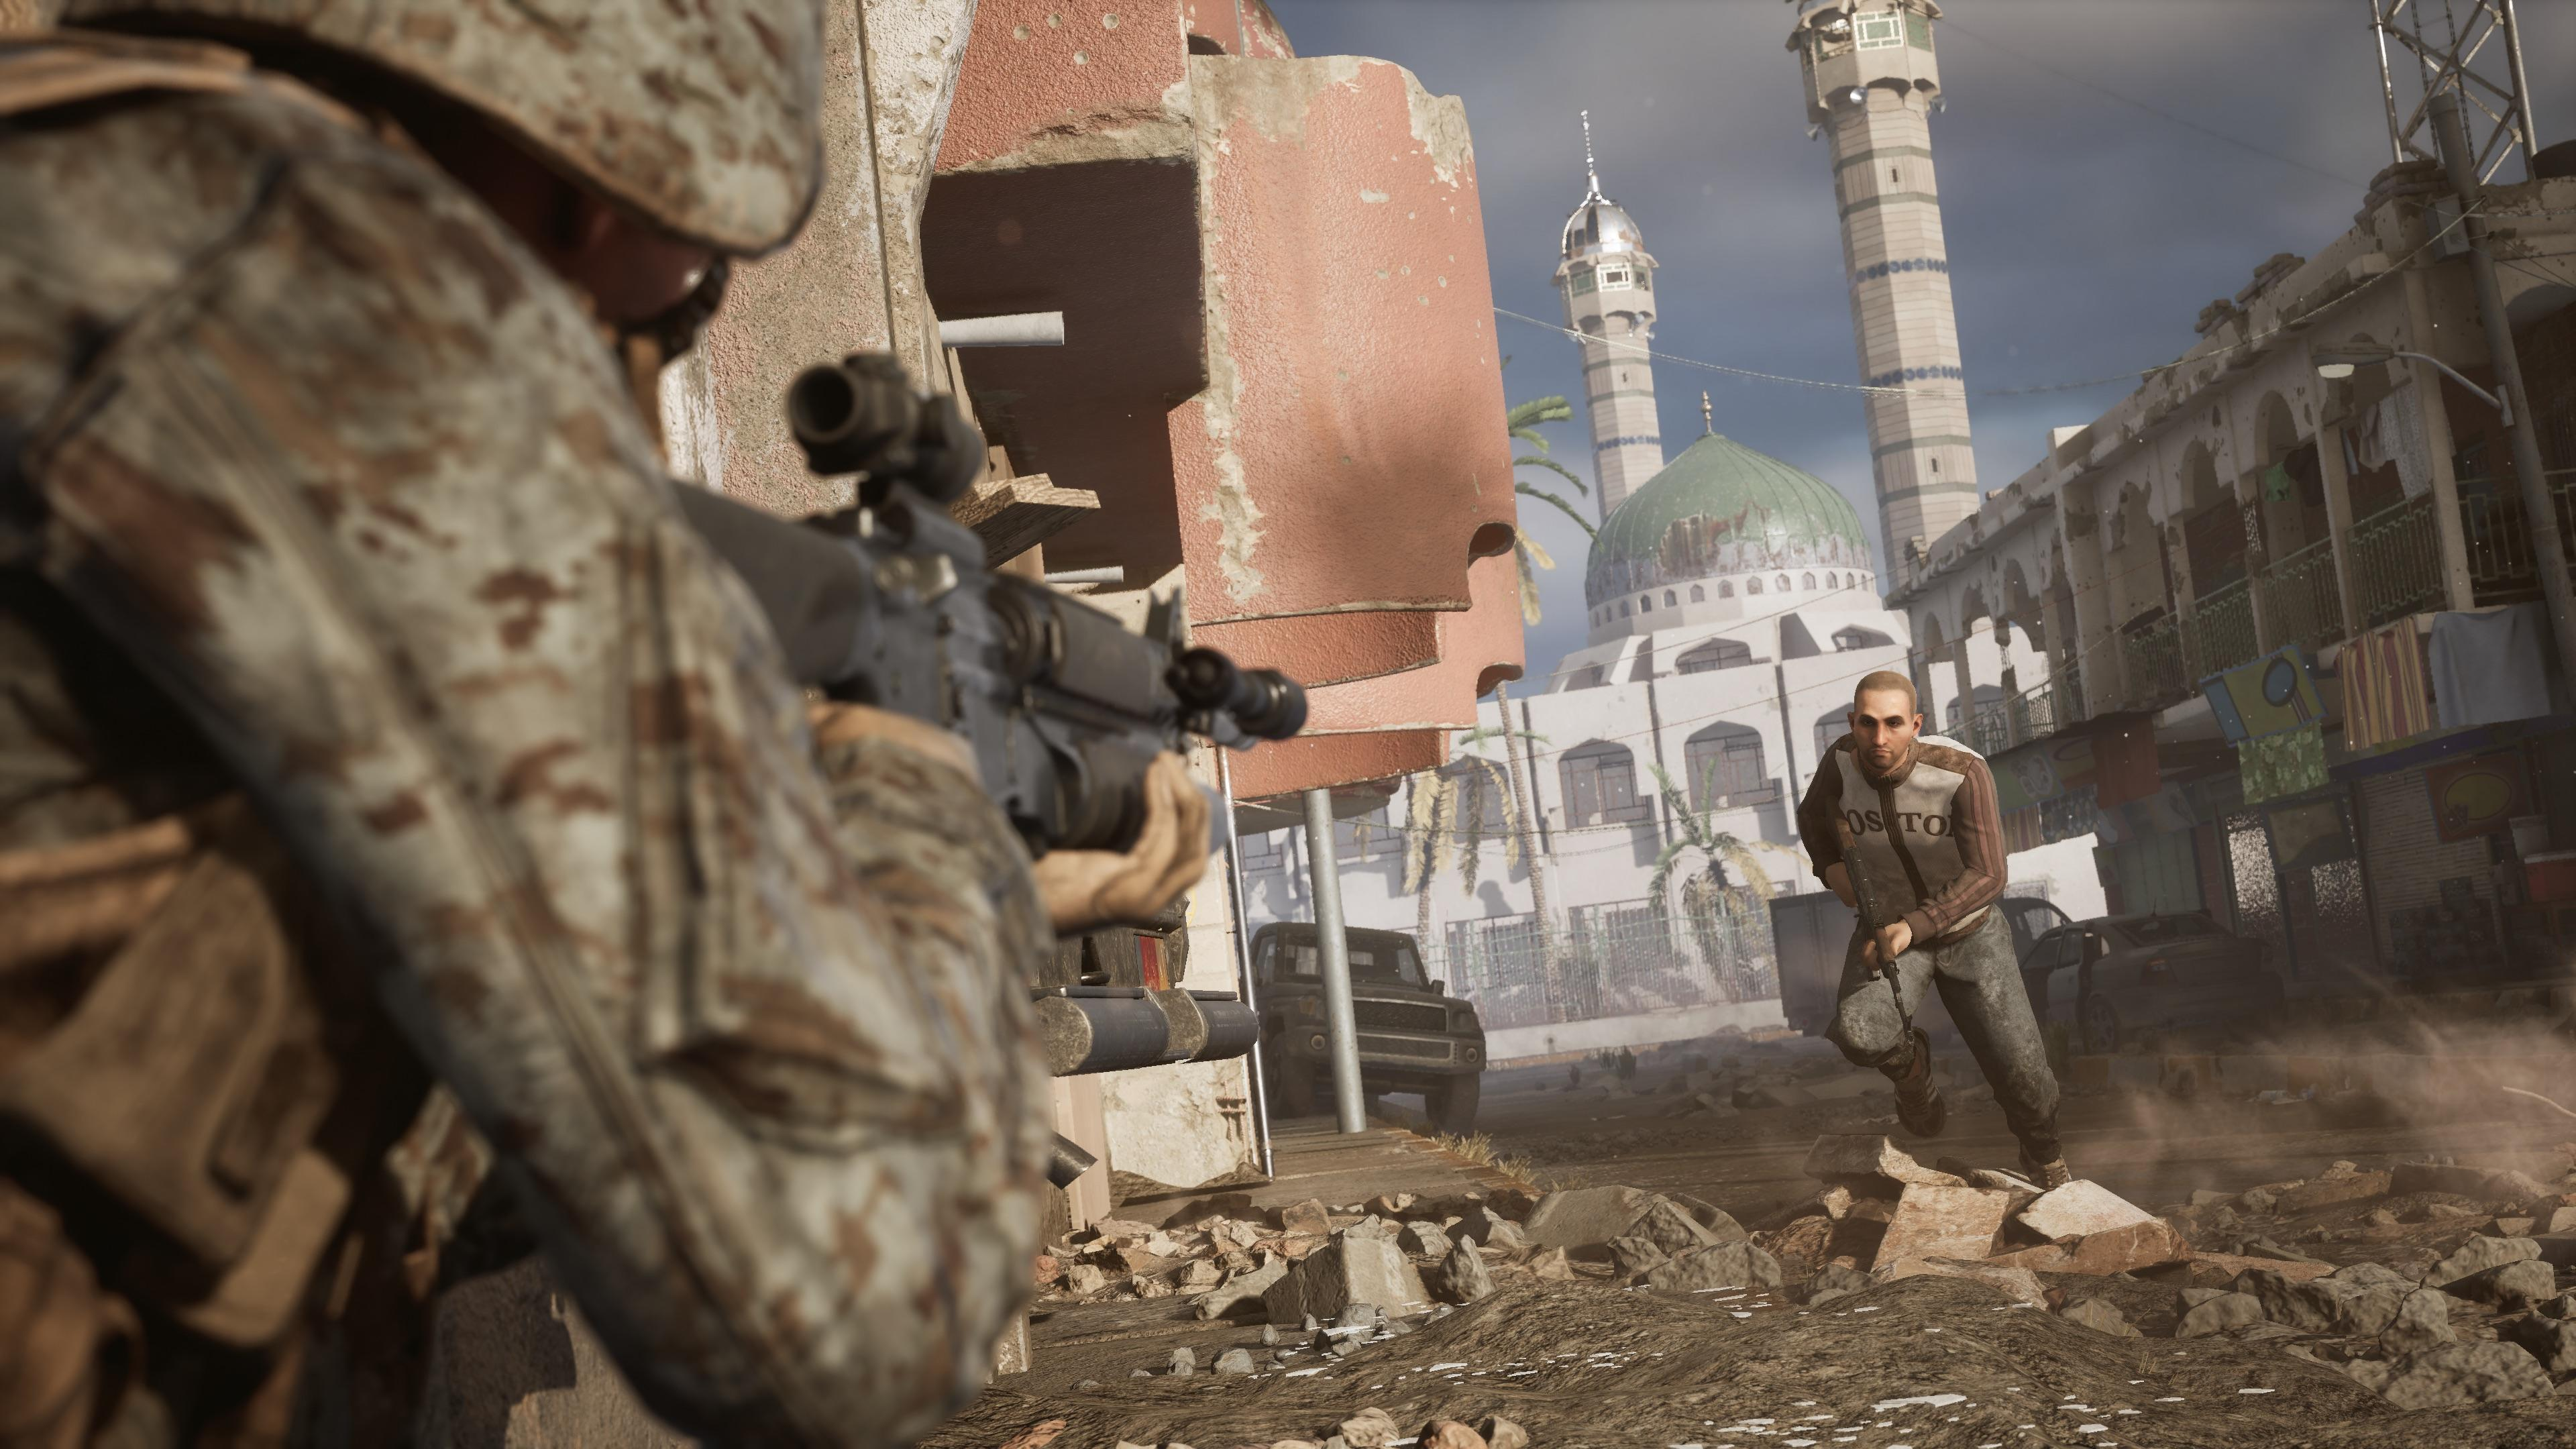 Controversial war game 'Six Days in Fallujah' questionably revived 12 years later - Engadget